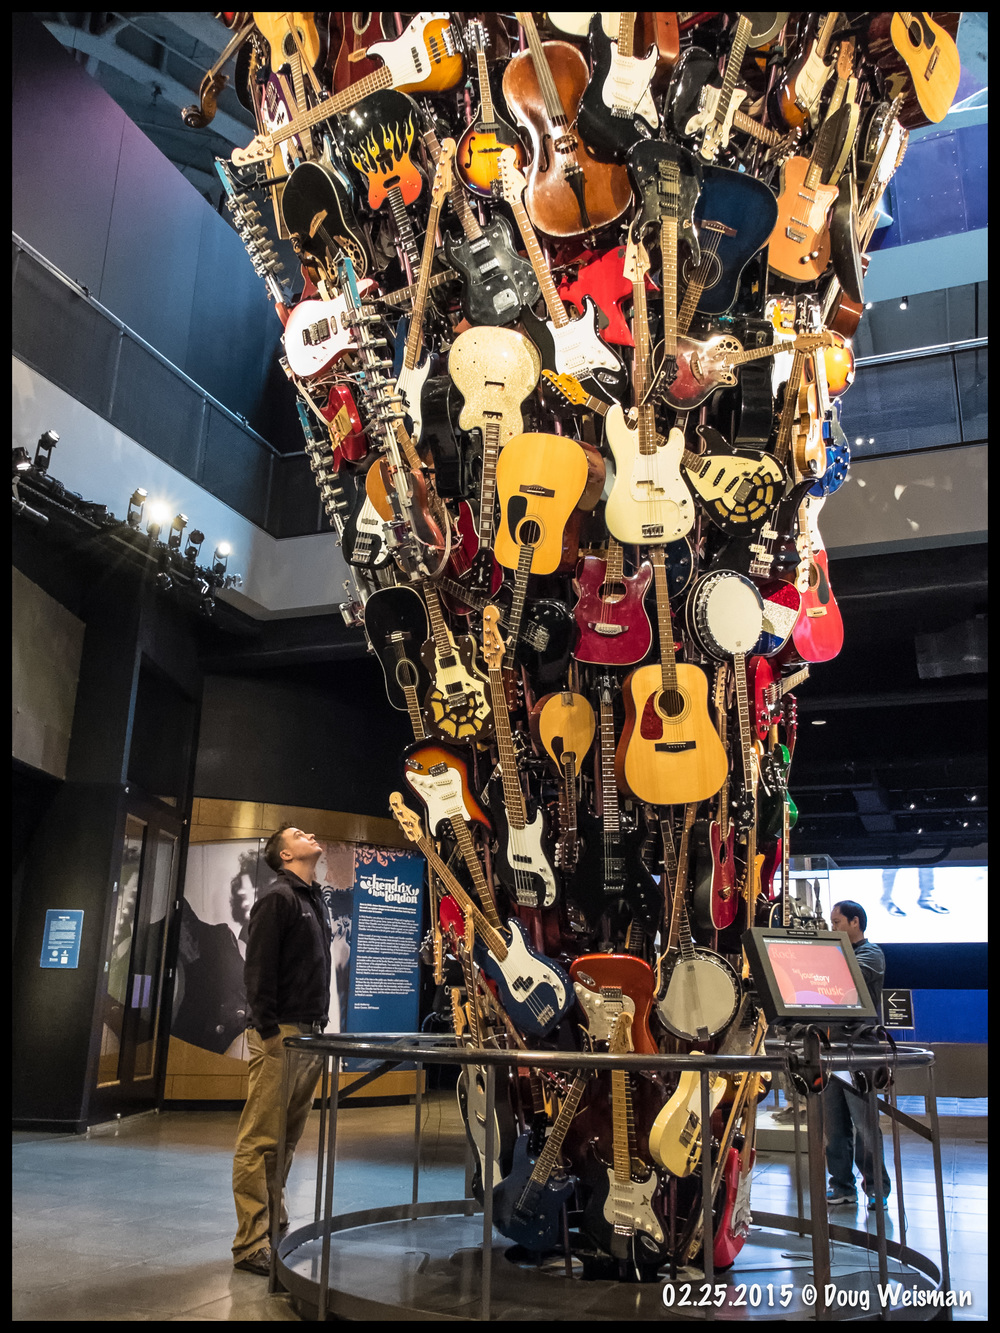 WOW!  That's a lot of guitars!